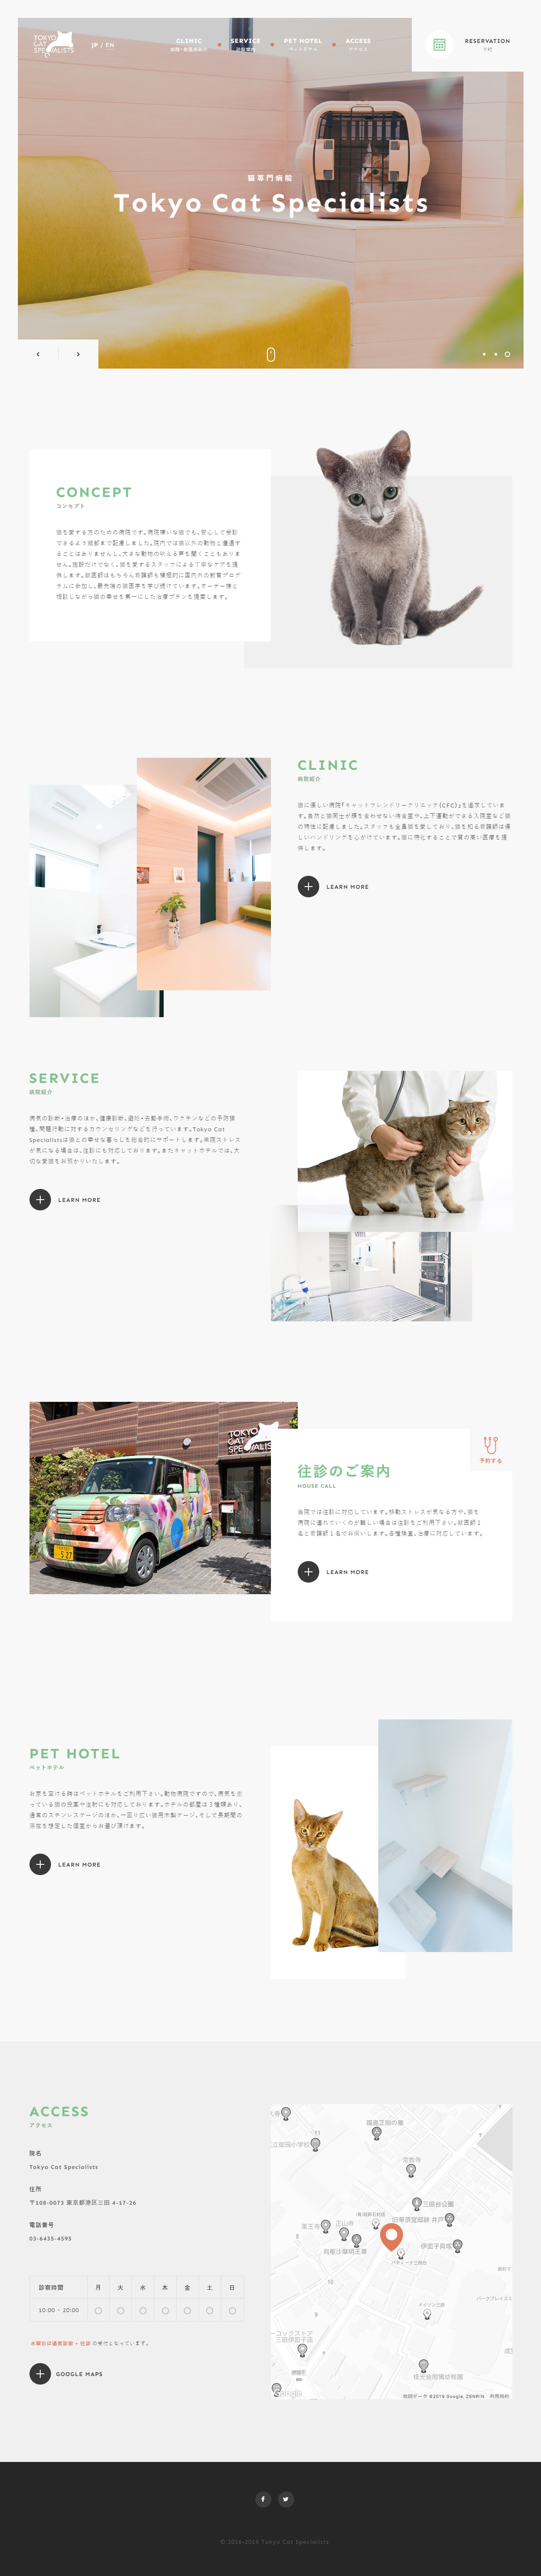 Tokyo Cat Specialists | 猫の専門病院